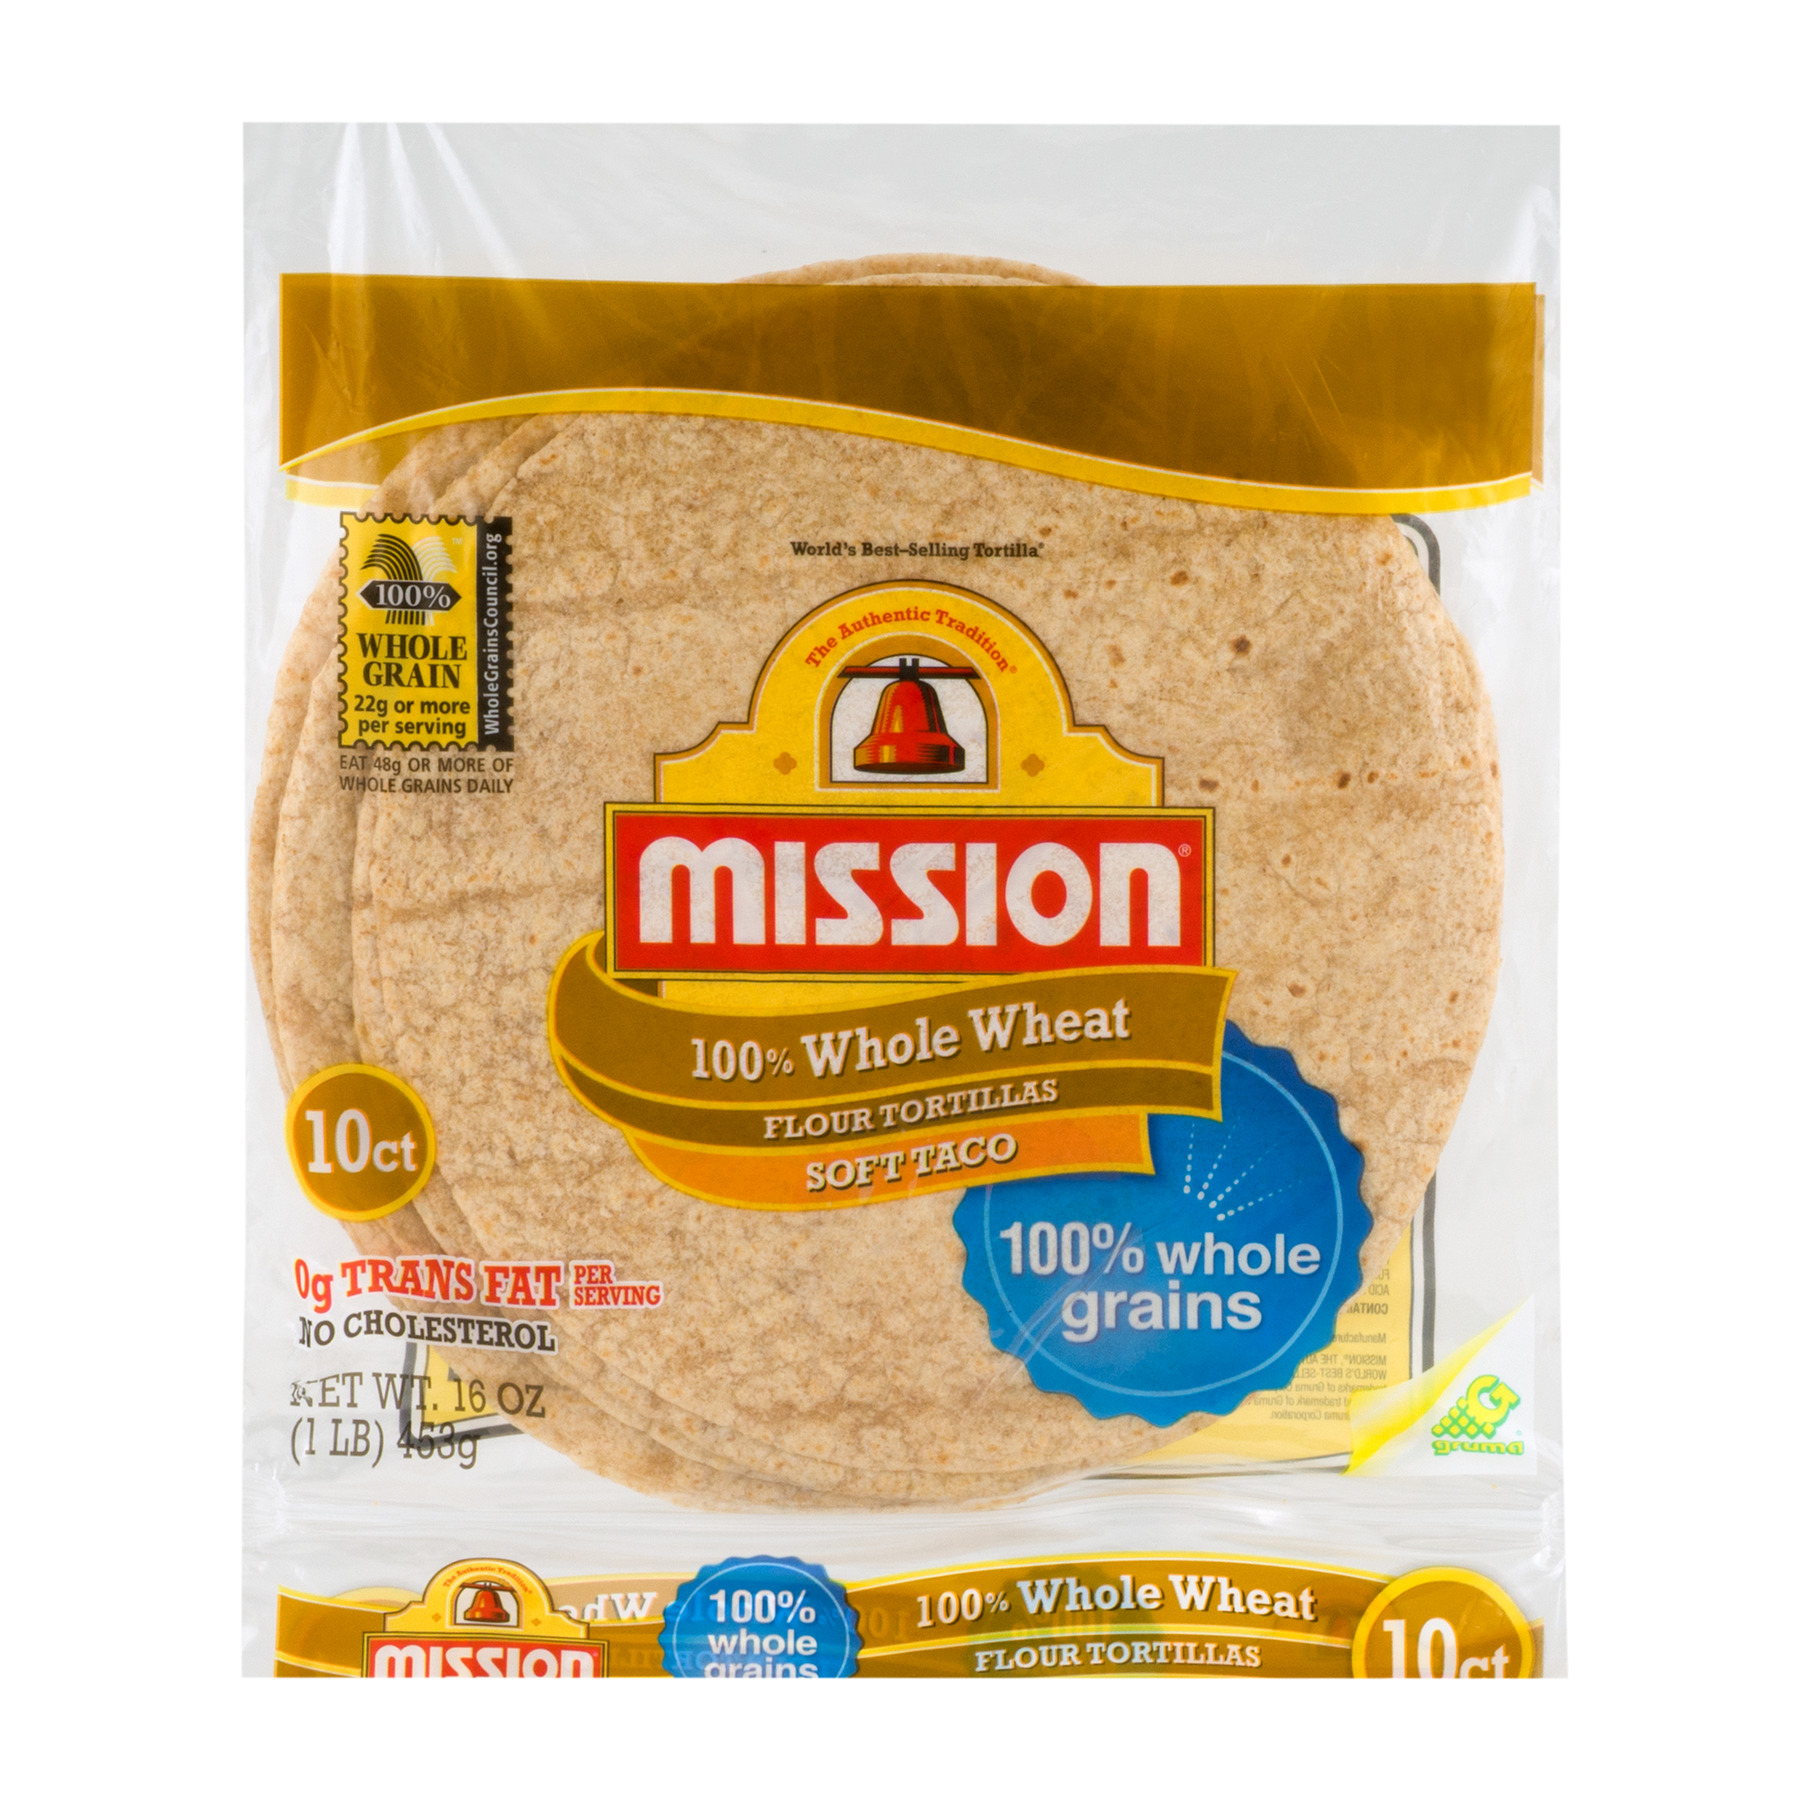 Mission Whole Wheat Soft Taco Tortillas, 10 Ct